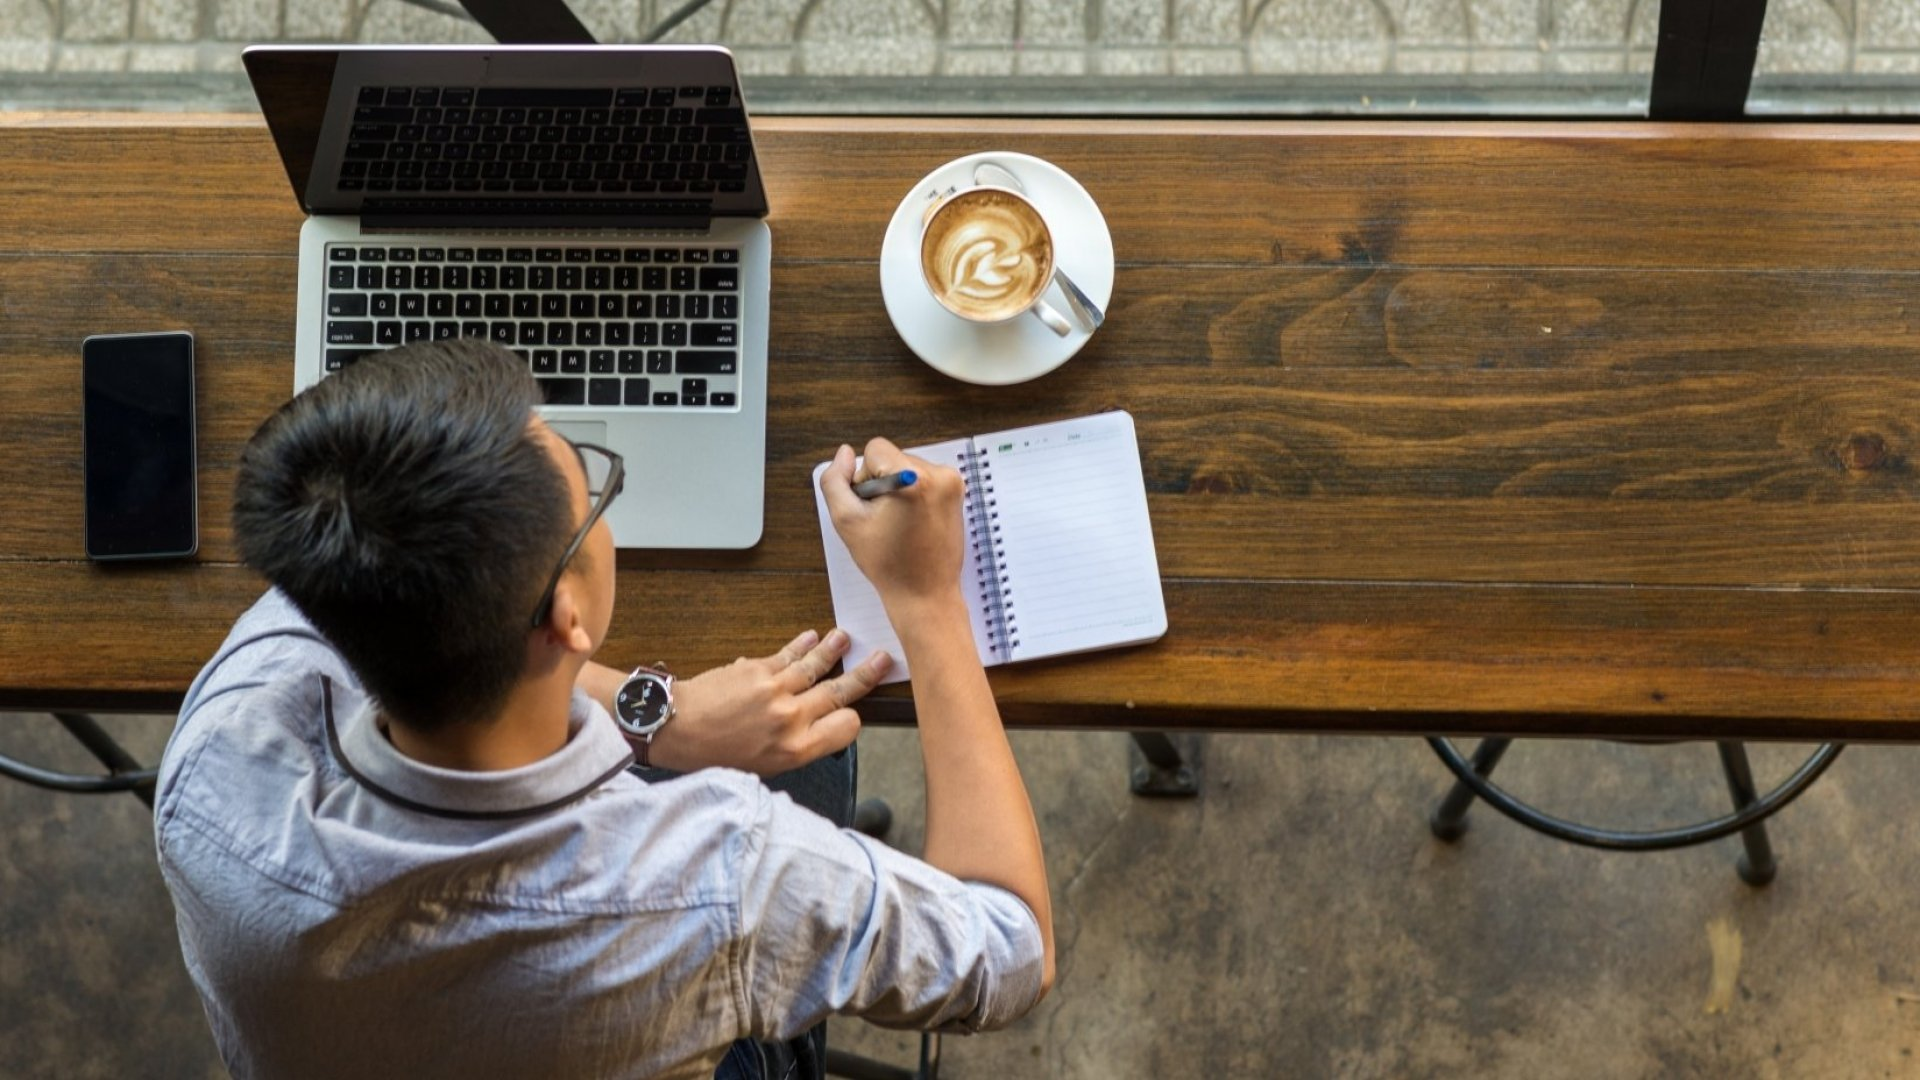 It's Easier to Focus in a Coffee Shop Than in an Open-Plan Office, According to Brain Scans